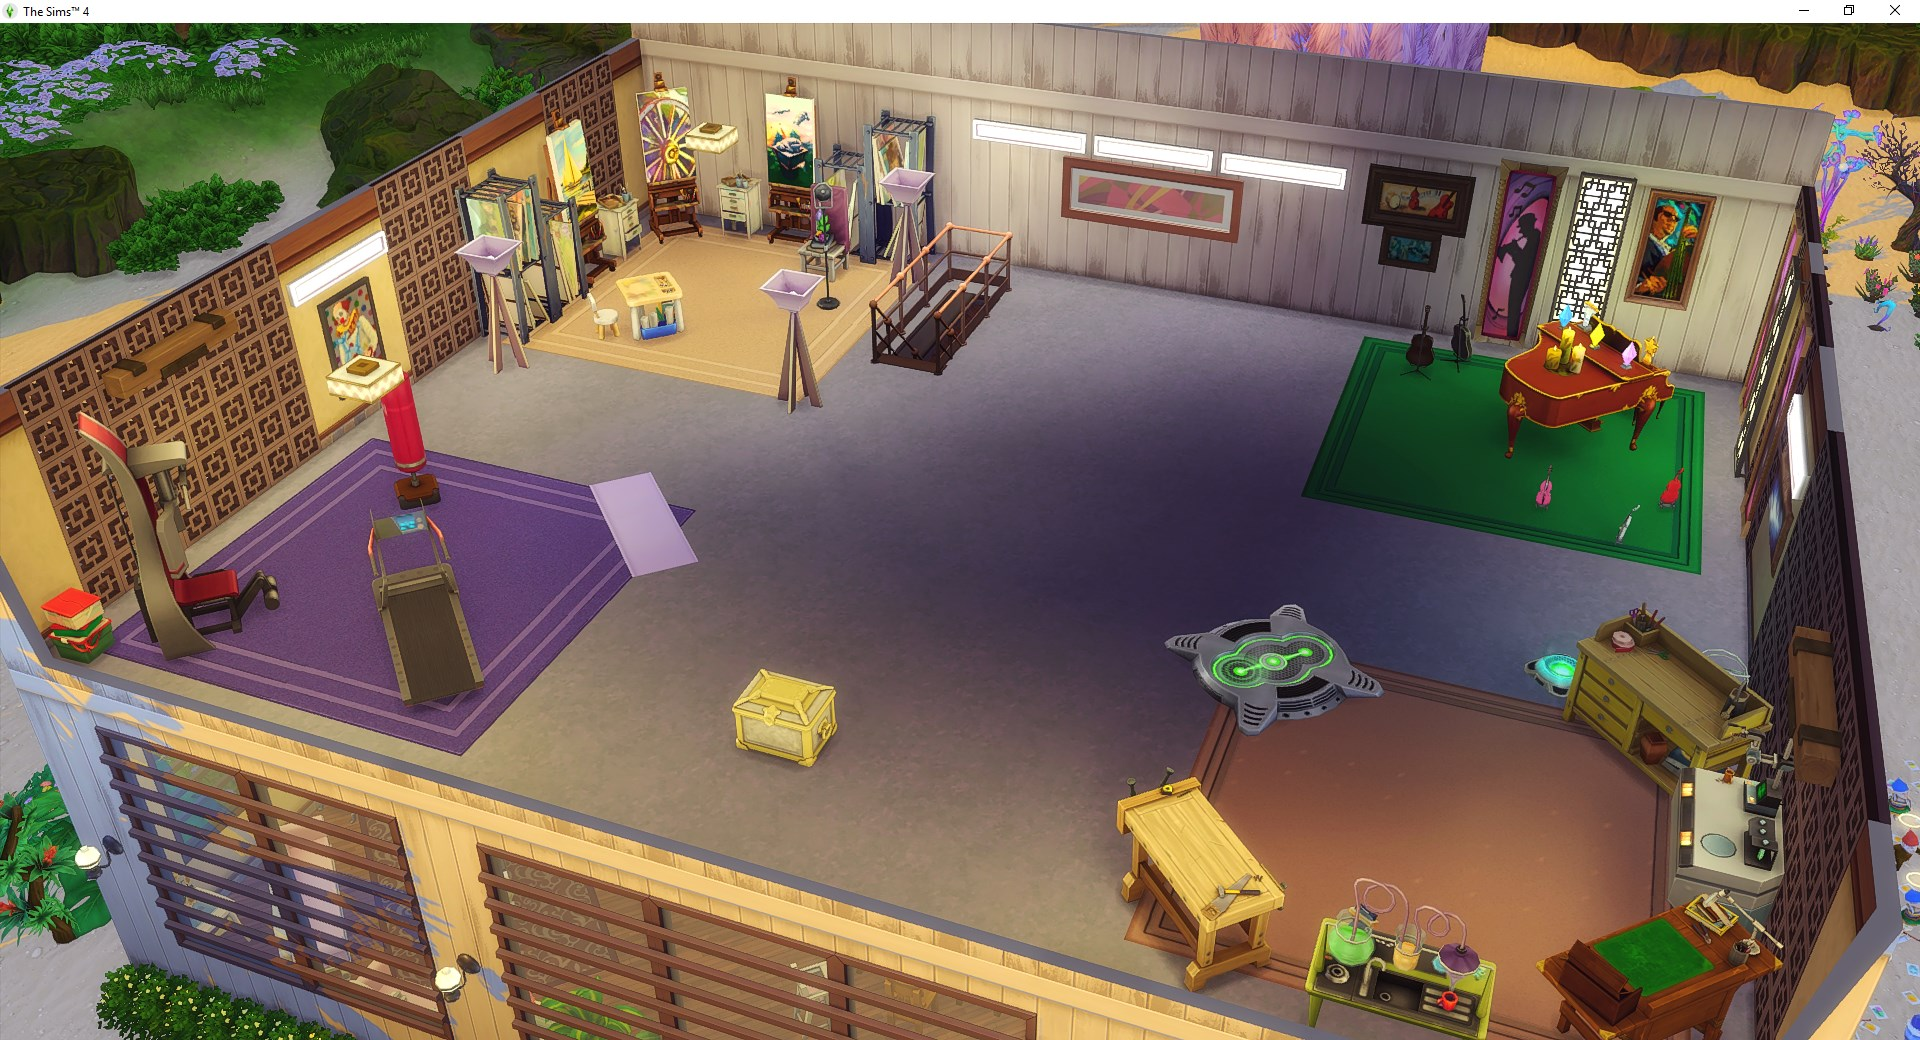 2019-09-05 21_05_41-The Sims™ 4